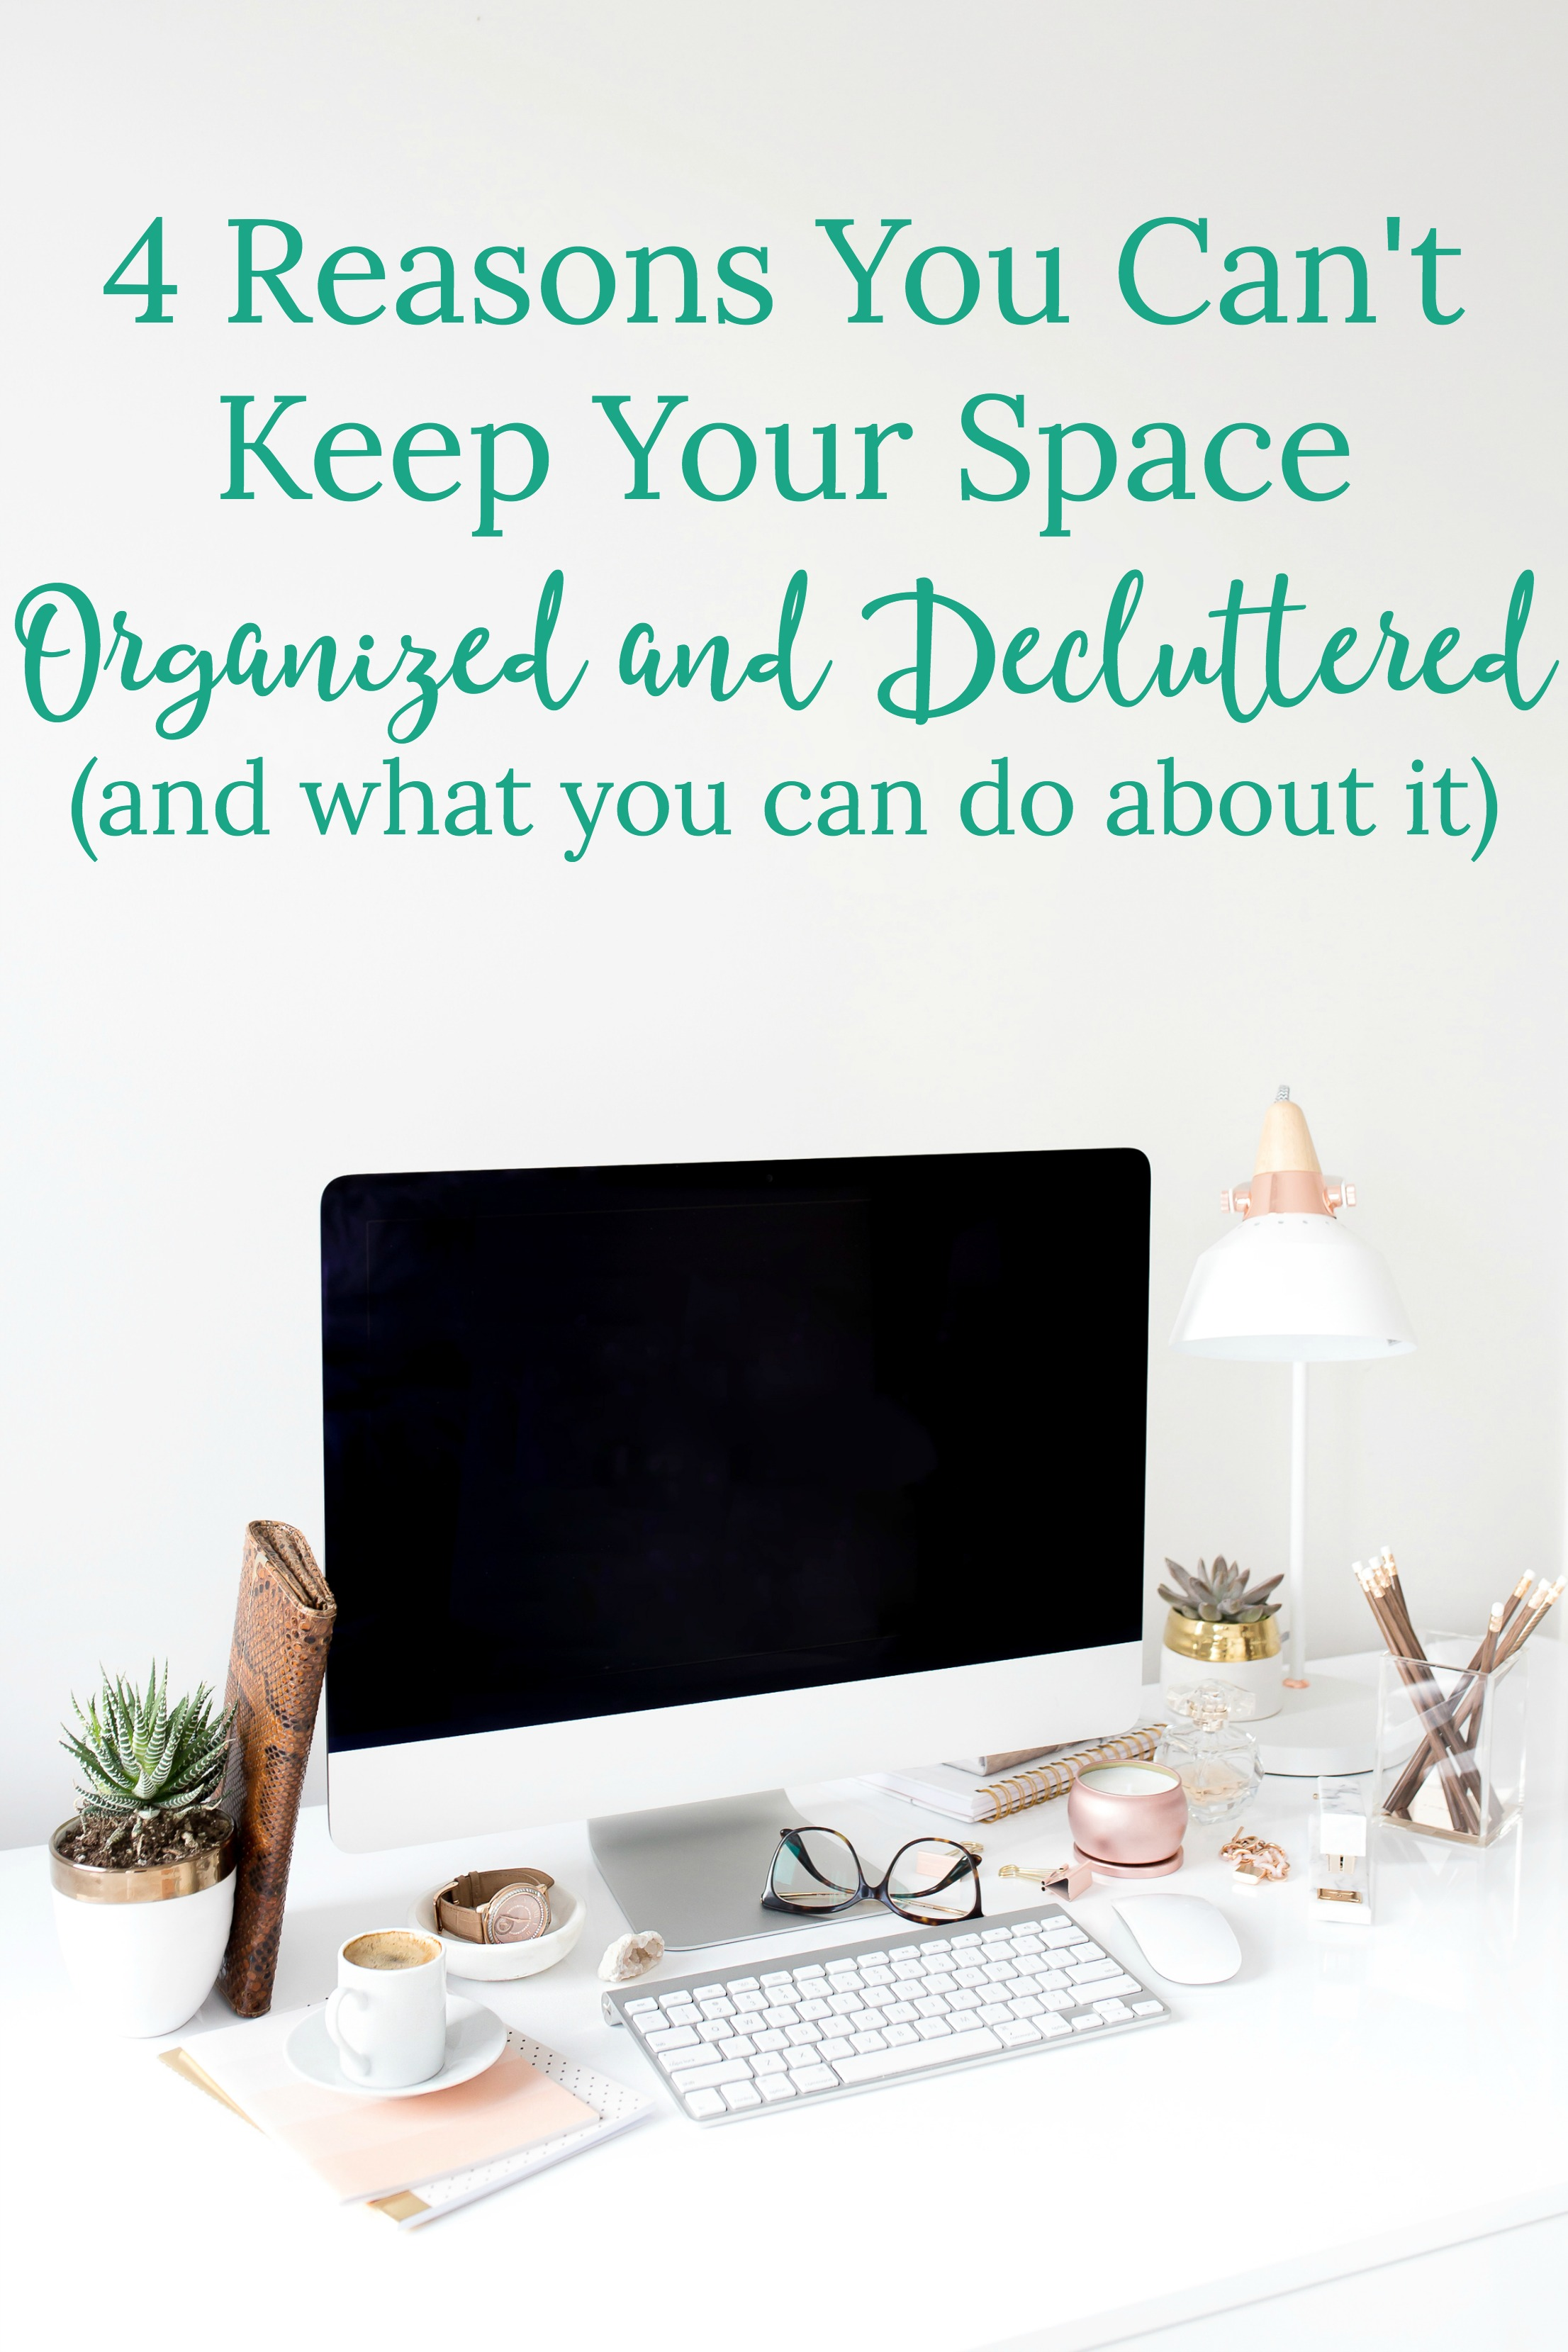 Is your space always disorganized and cluttered? Is it driving you crazy? Read why this happens and what you can do about it.